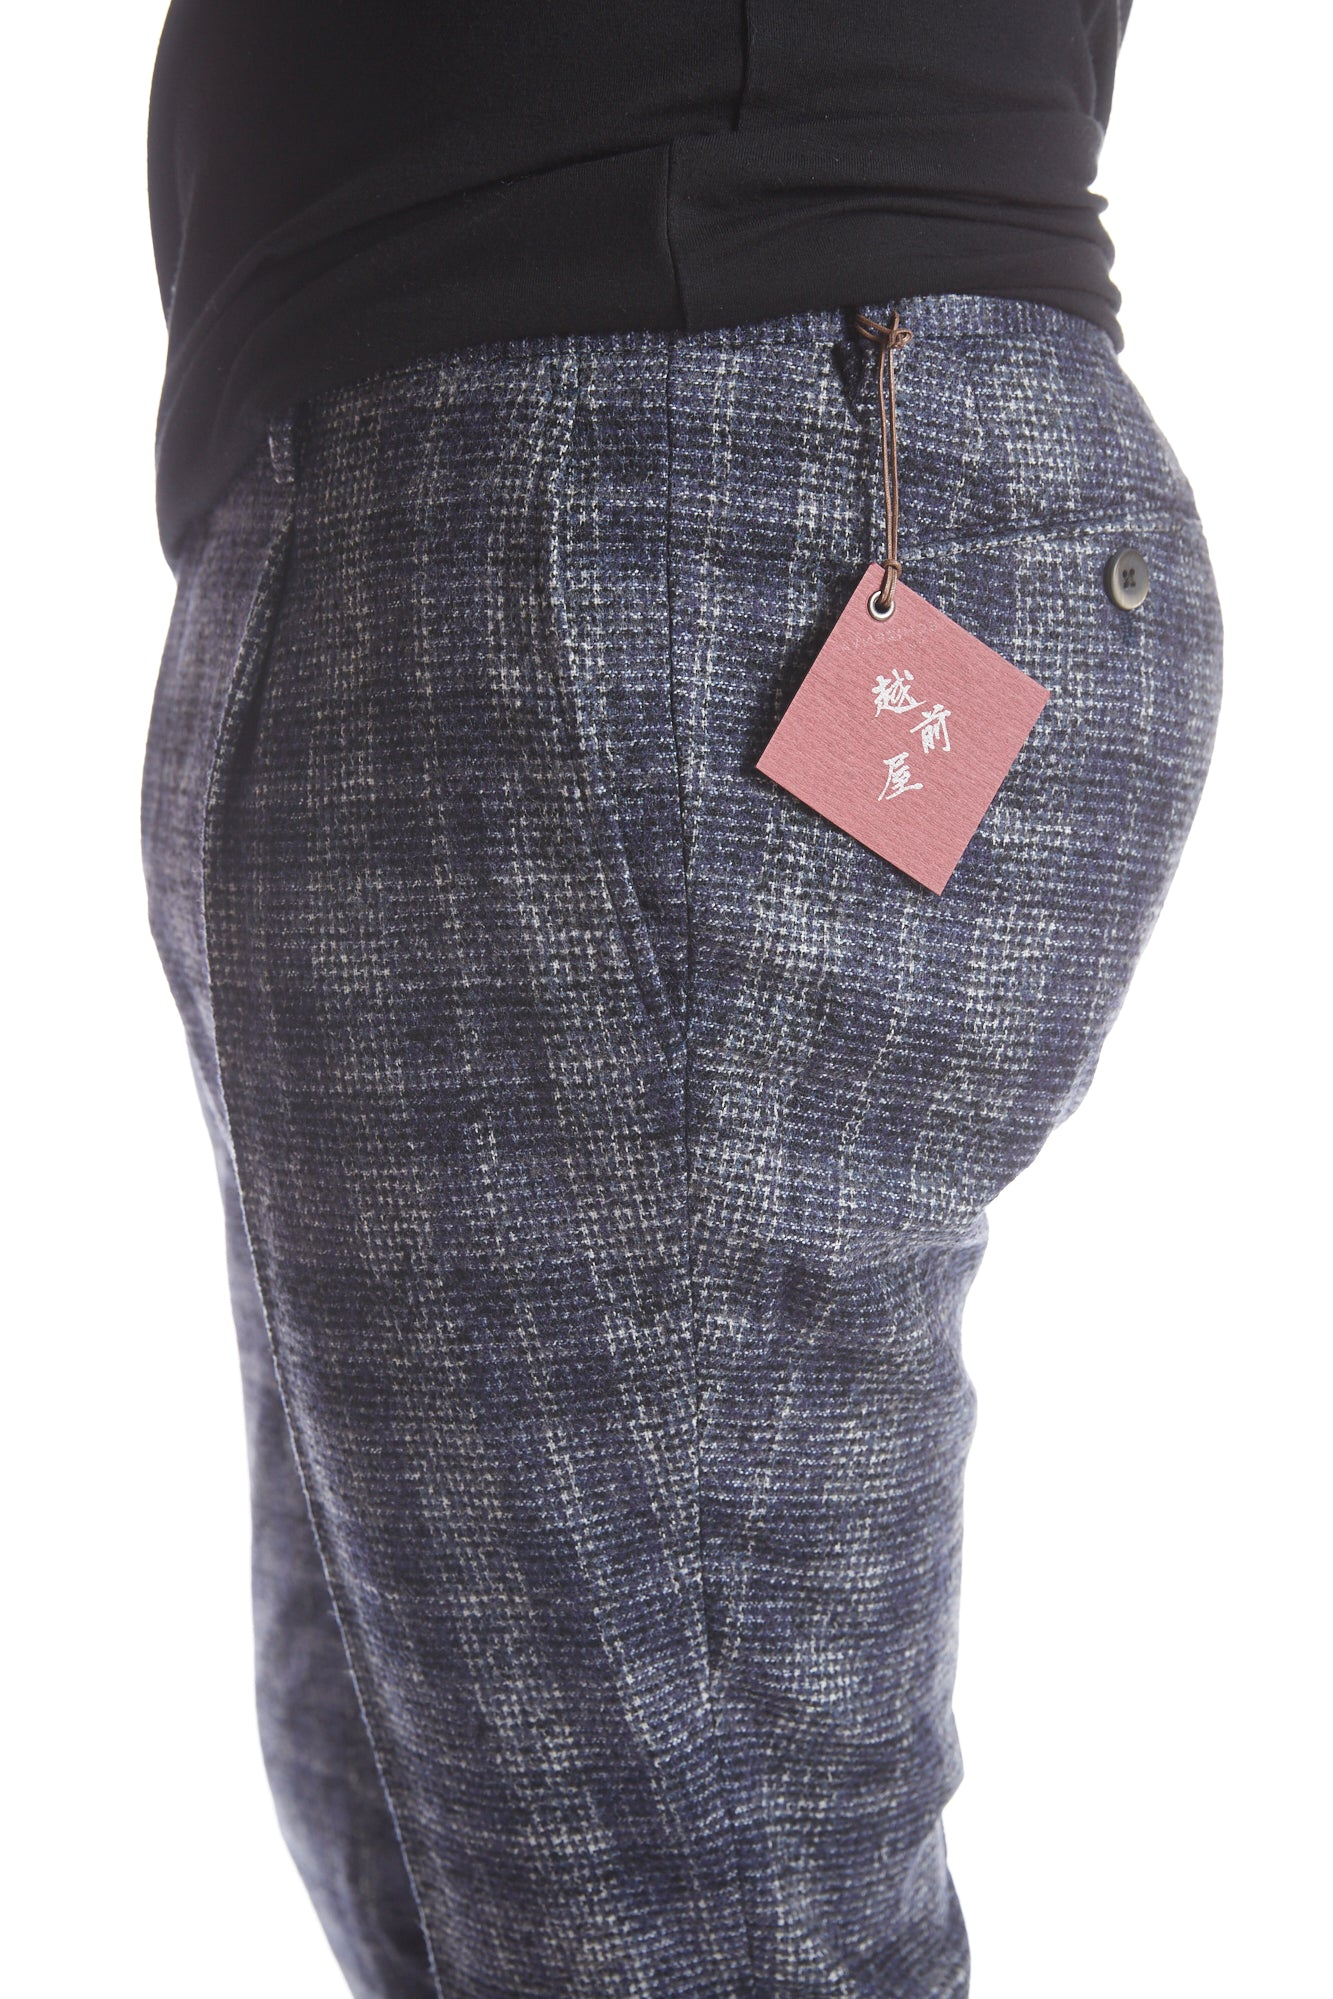 Echizenya Blue Plaid Pleated Wool Pants - Pants - Echizenya - LALONDE's